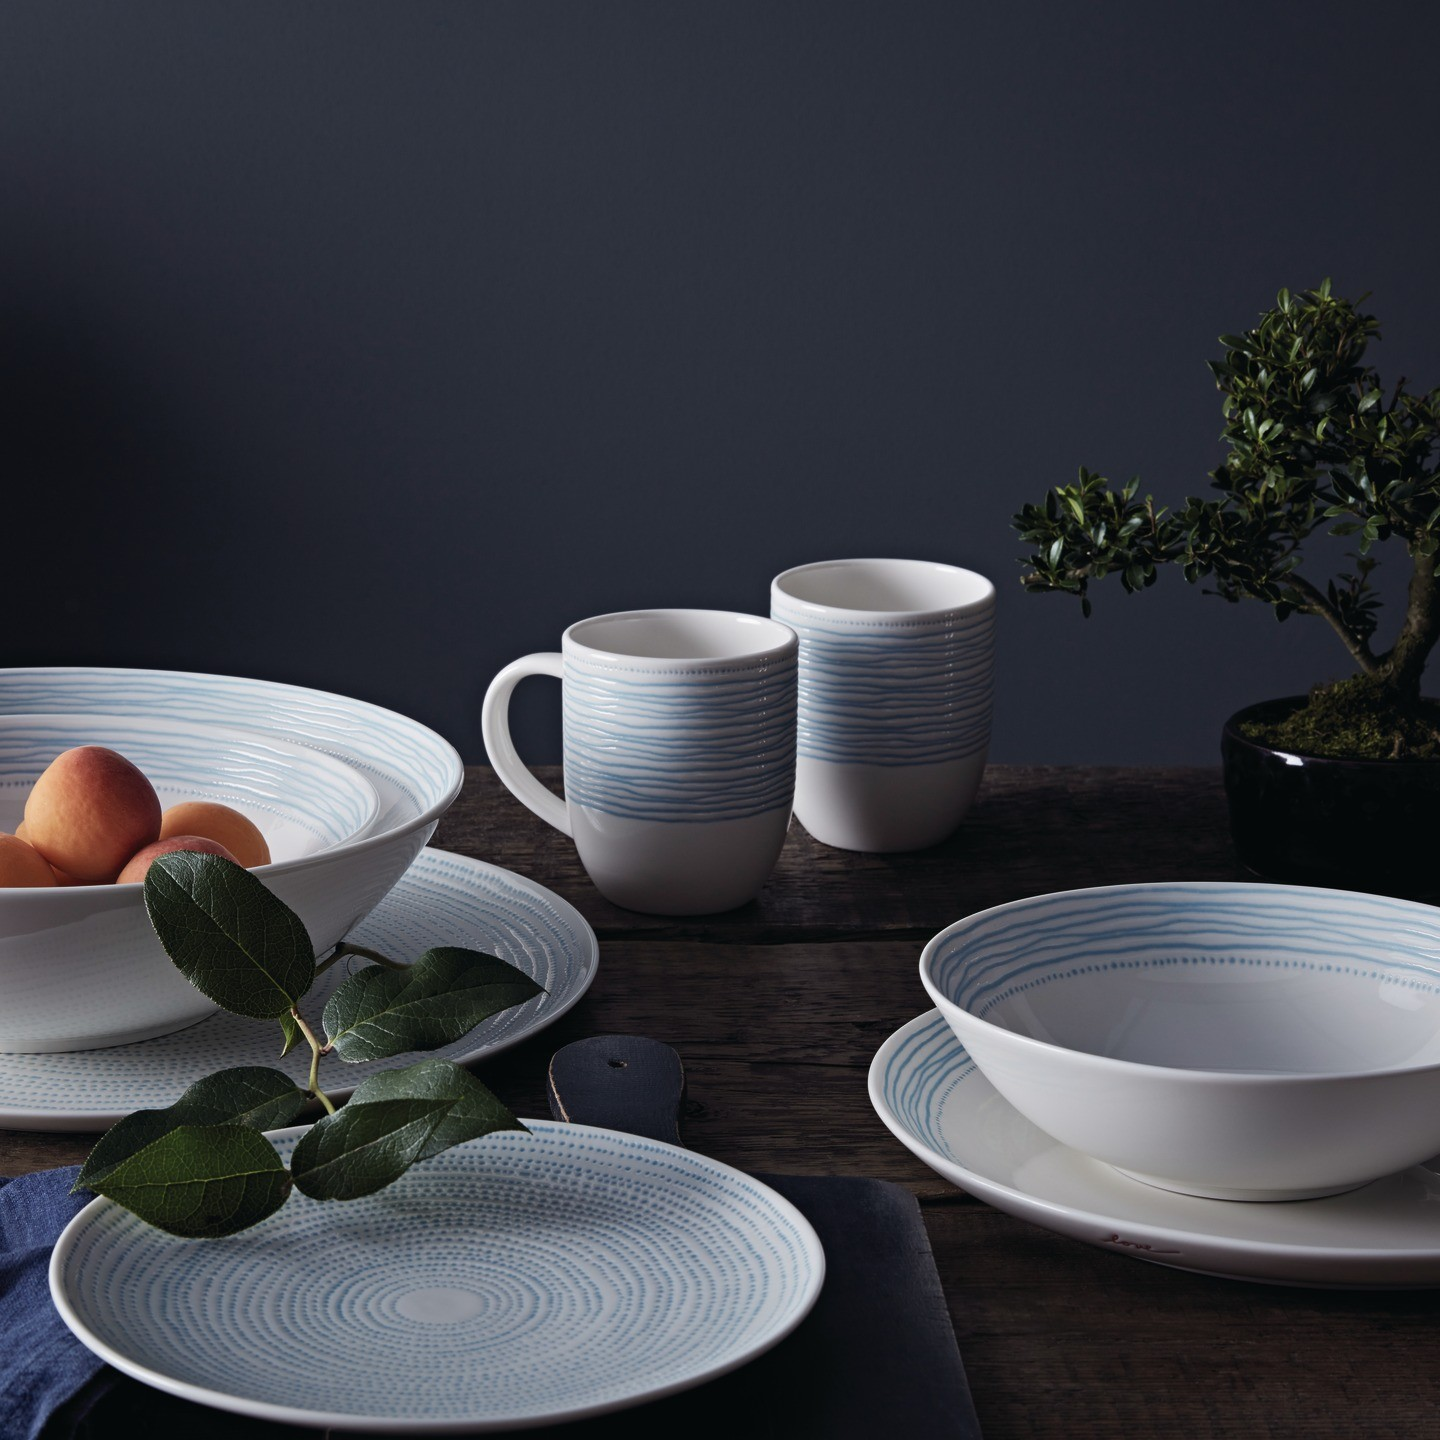 Right Tableware